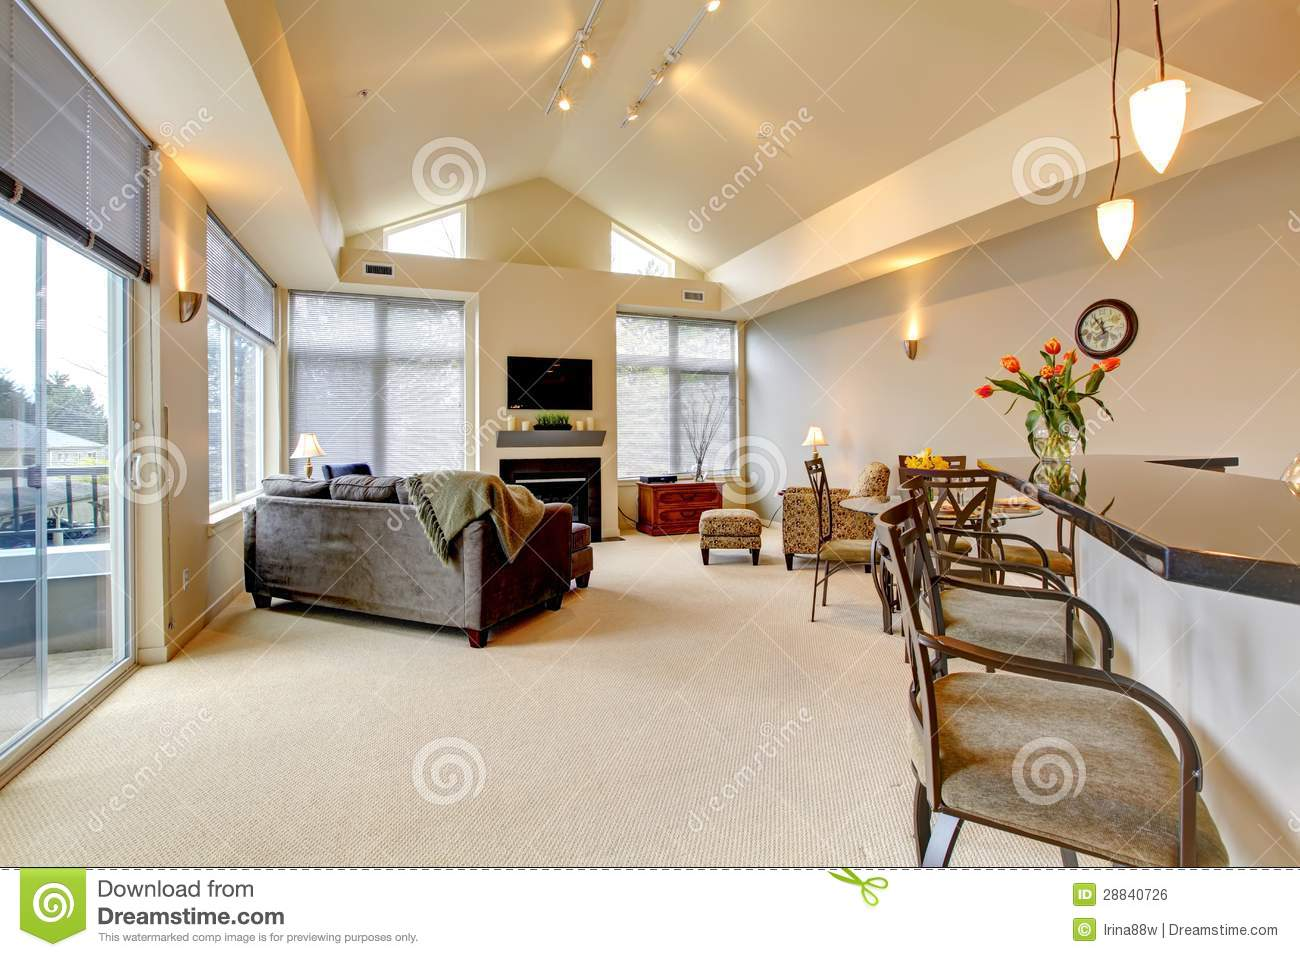 Beau salon d'un appartement de luxe photo stock   image: 54072861